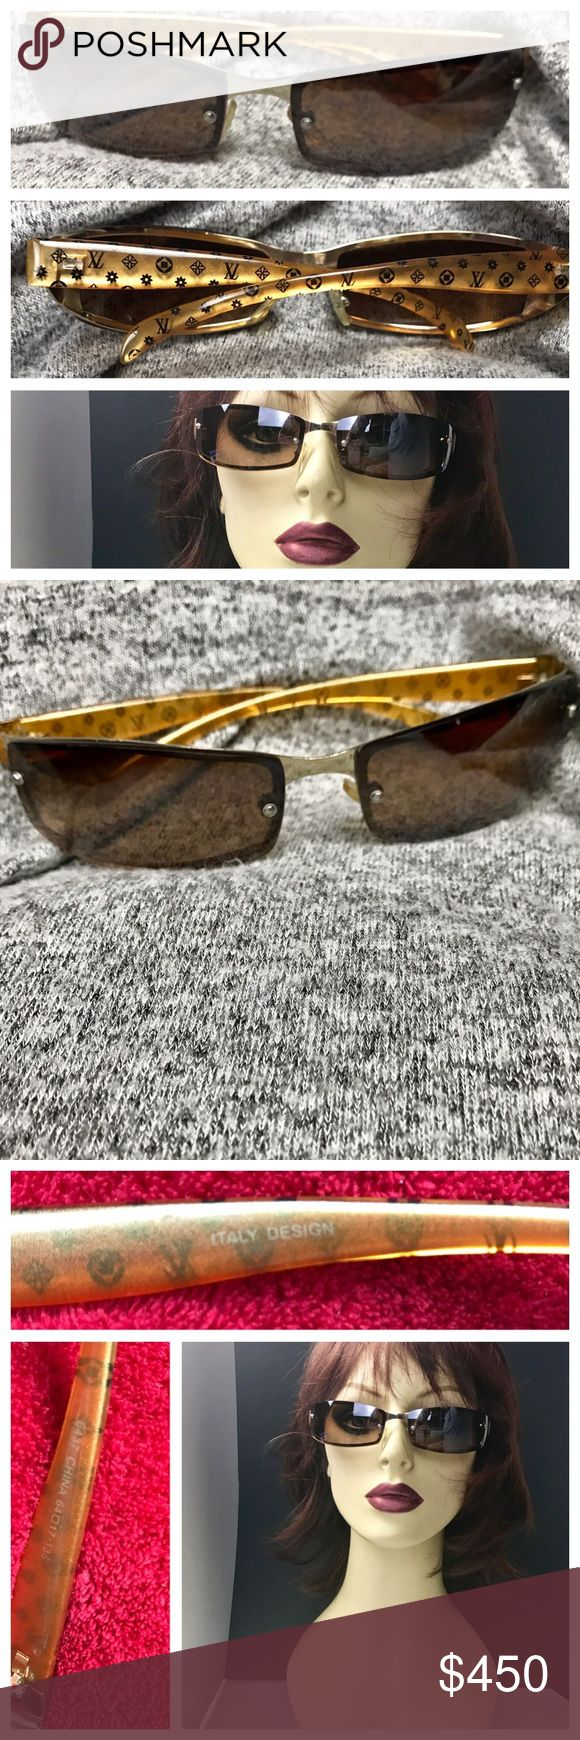 Vintage Louis Vuitton Sunglasses *Rare* Vintage 1990s Louis Vuitton Sunglasses wrap around style 💫Rare and Collectible 💫  These are 💯 Authentic purchased at Louis Vuitton store and in excellent vintage condition. Honey amber glitter plastic legs made in Italy with brown lenses that help reduce eye strain from bright sunlight. So incredibly unique and very hard to find let alone in this great condition. Originally $700.00 with tax. Louis Vuitton Accessories Glasses